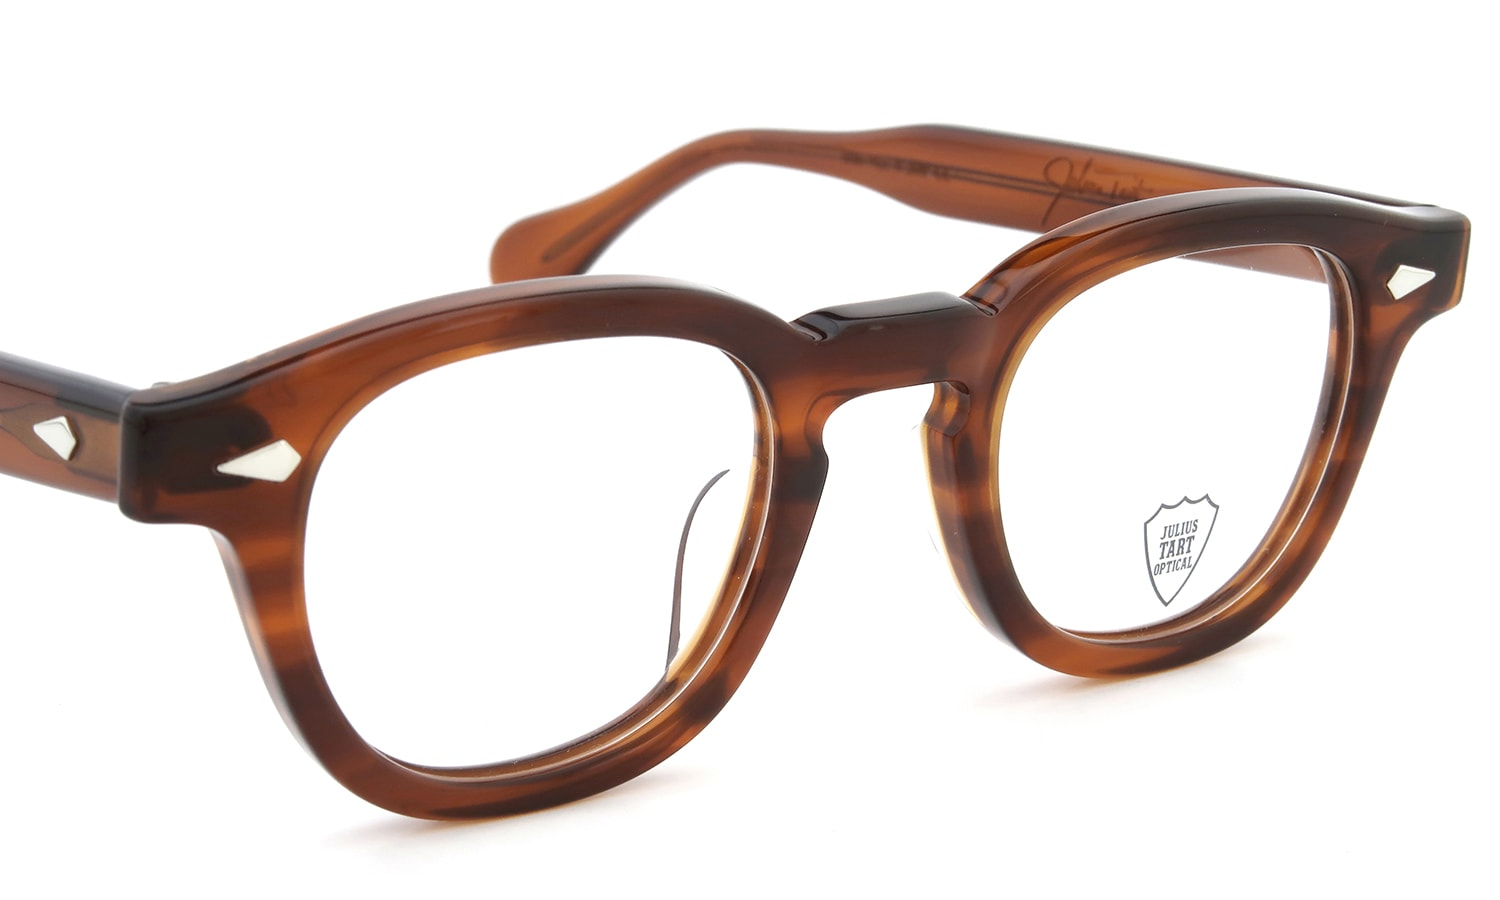 JULIUS TART OPTICAL AR-42 AMBER